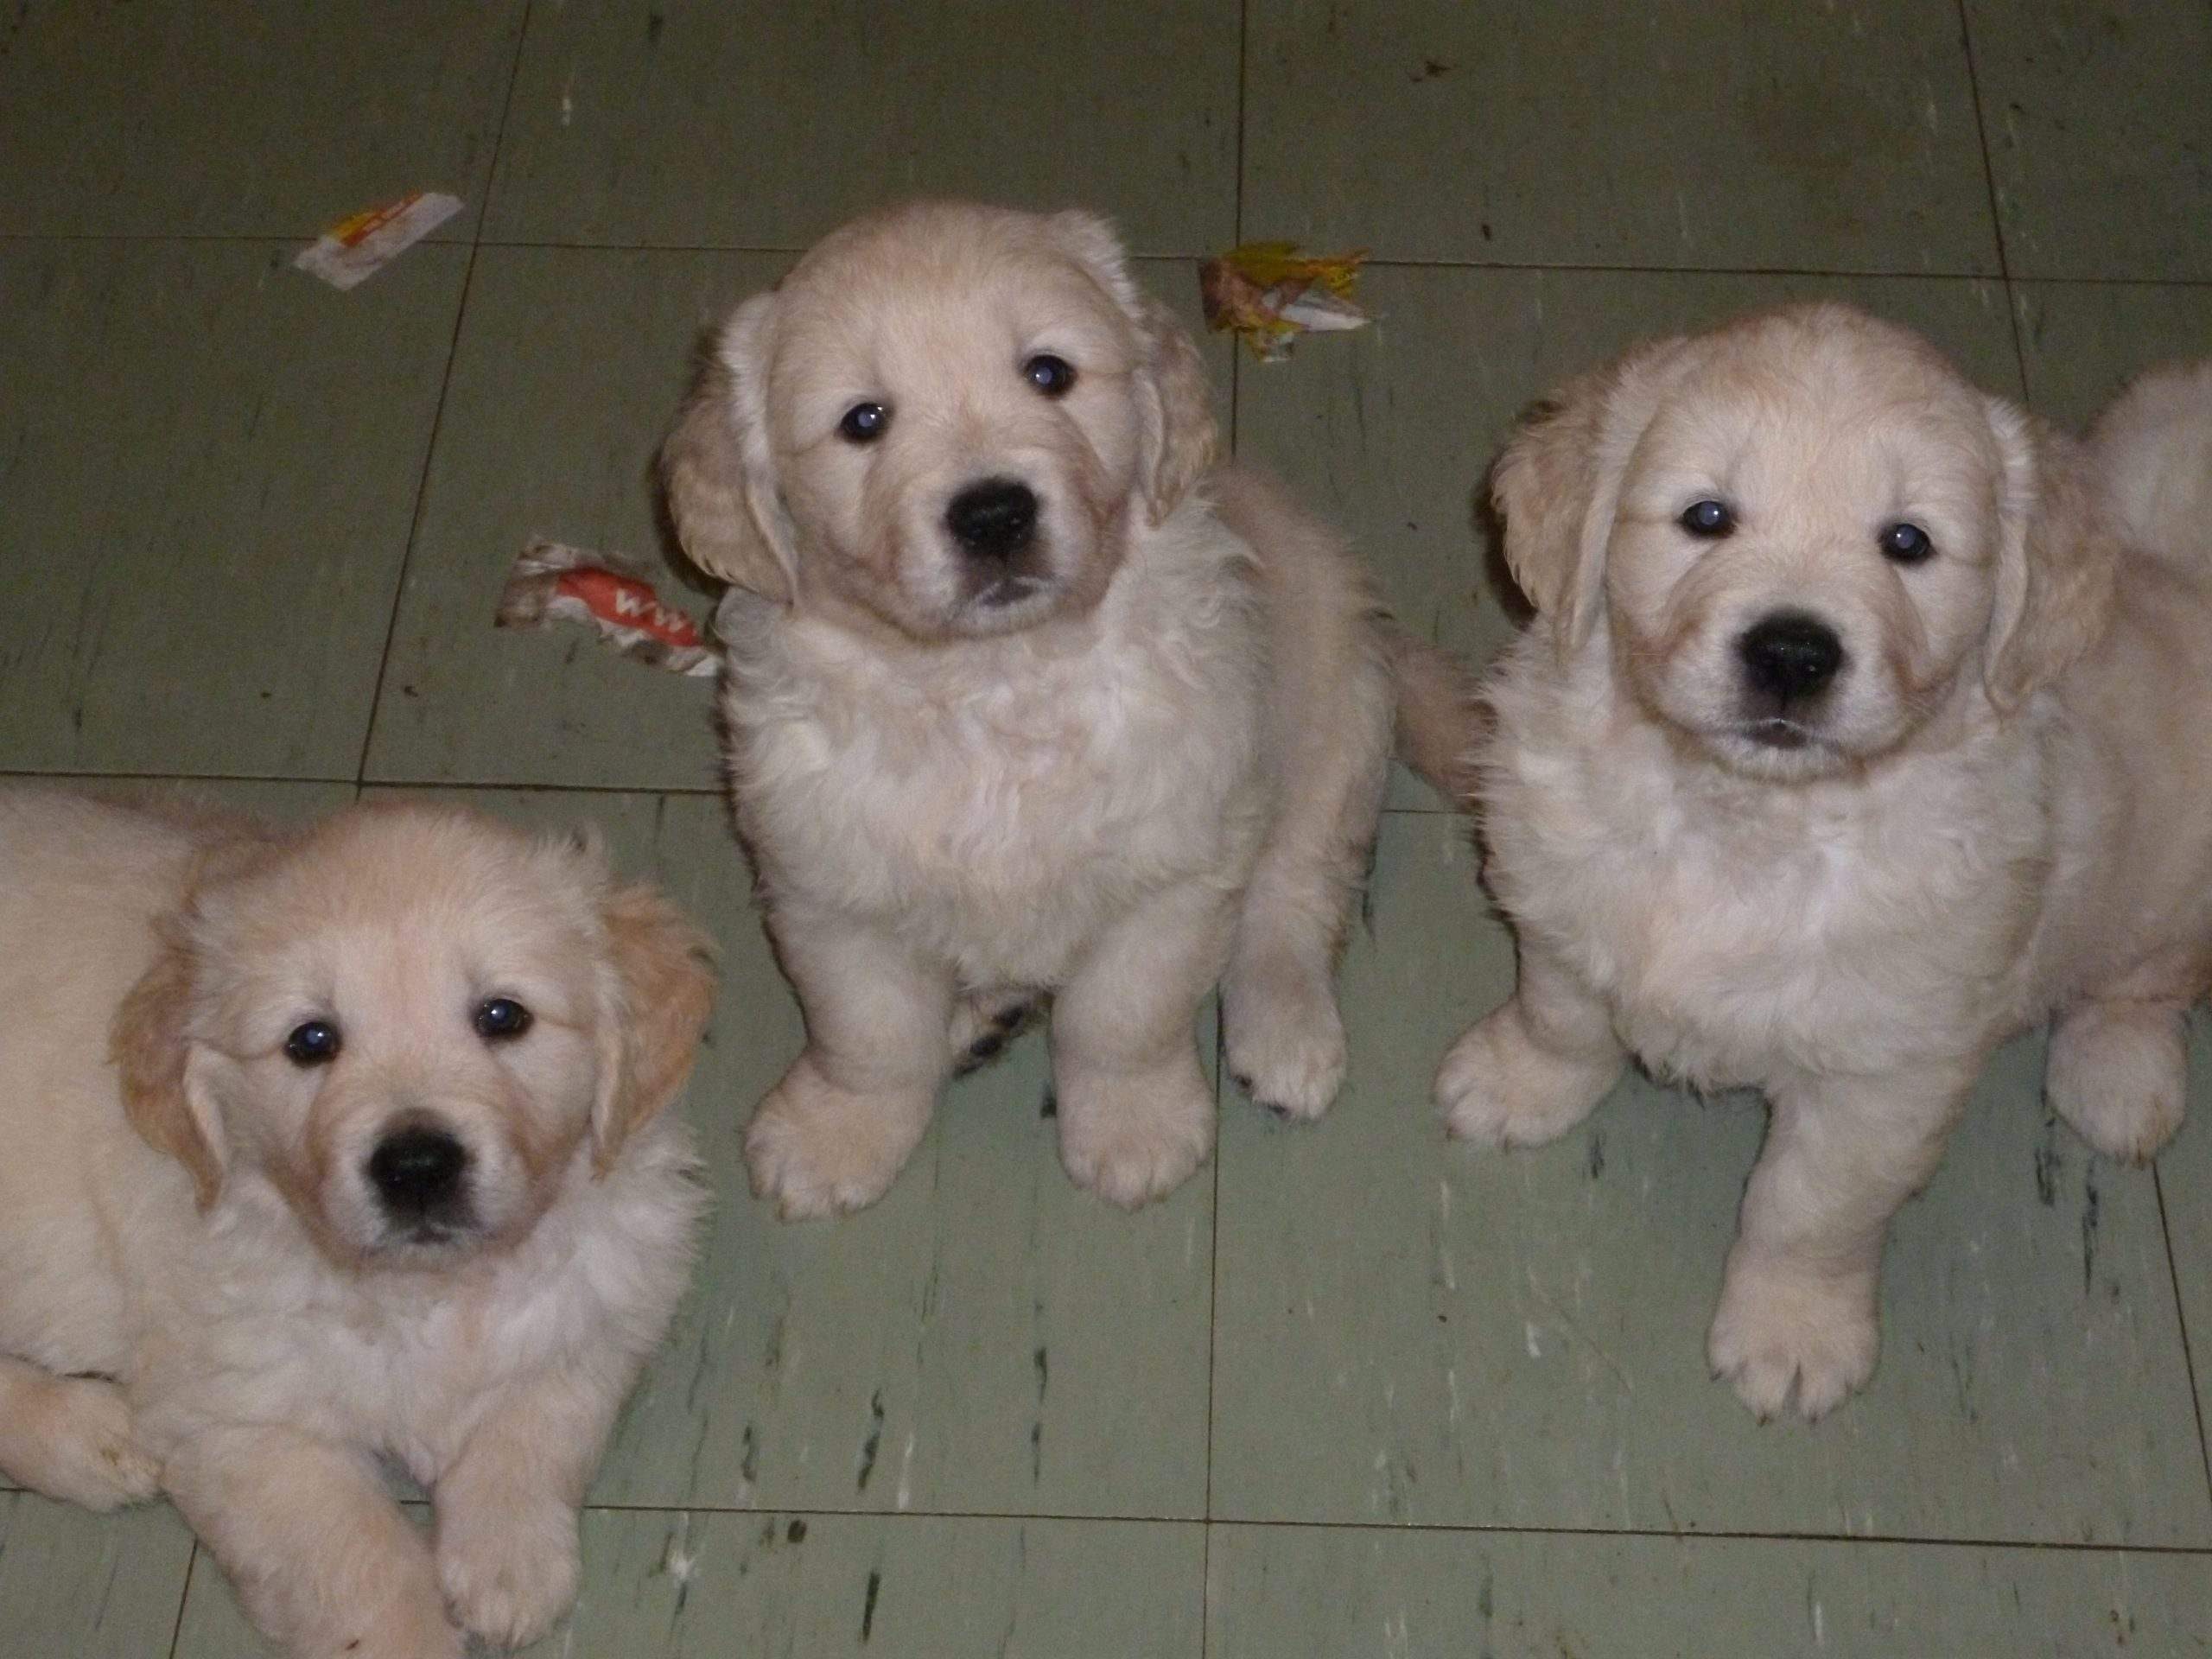 Three other puppies